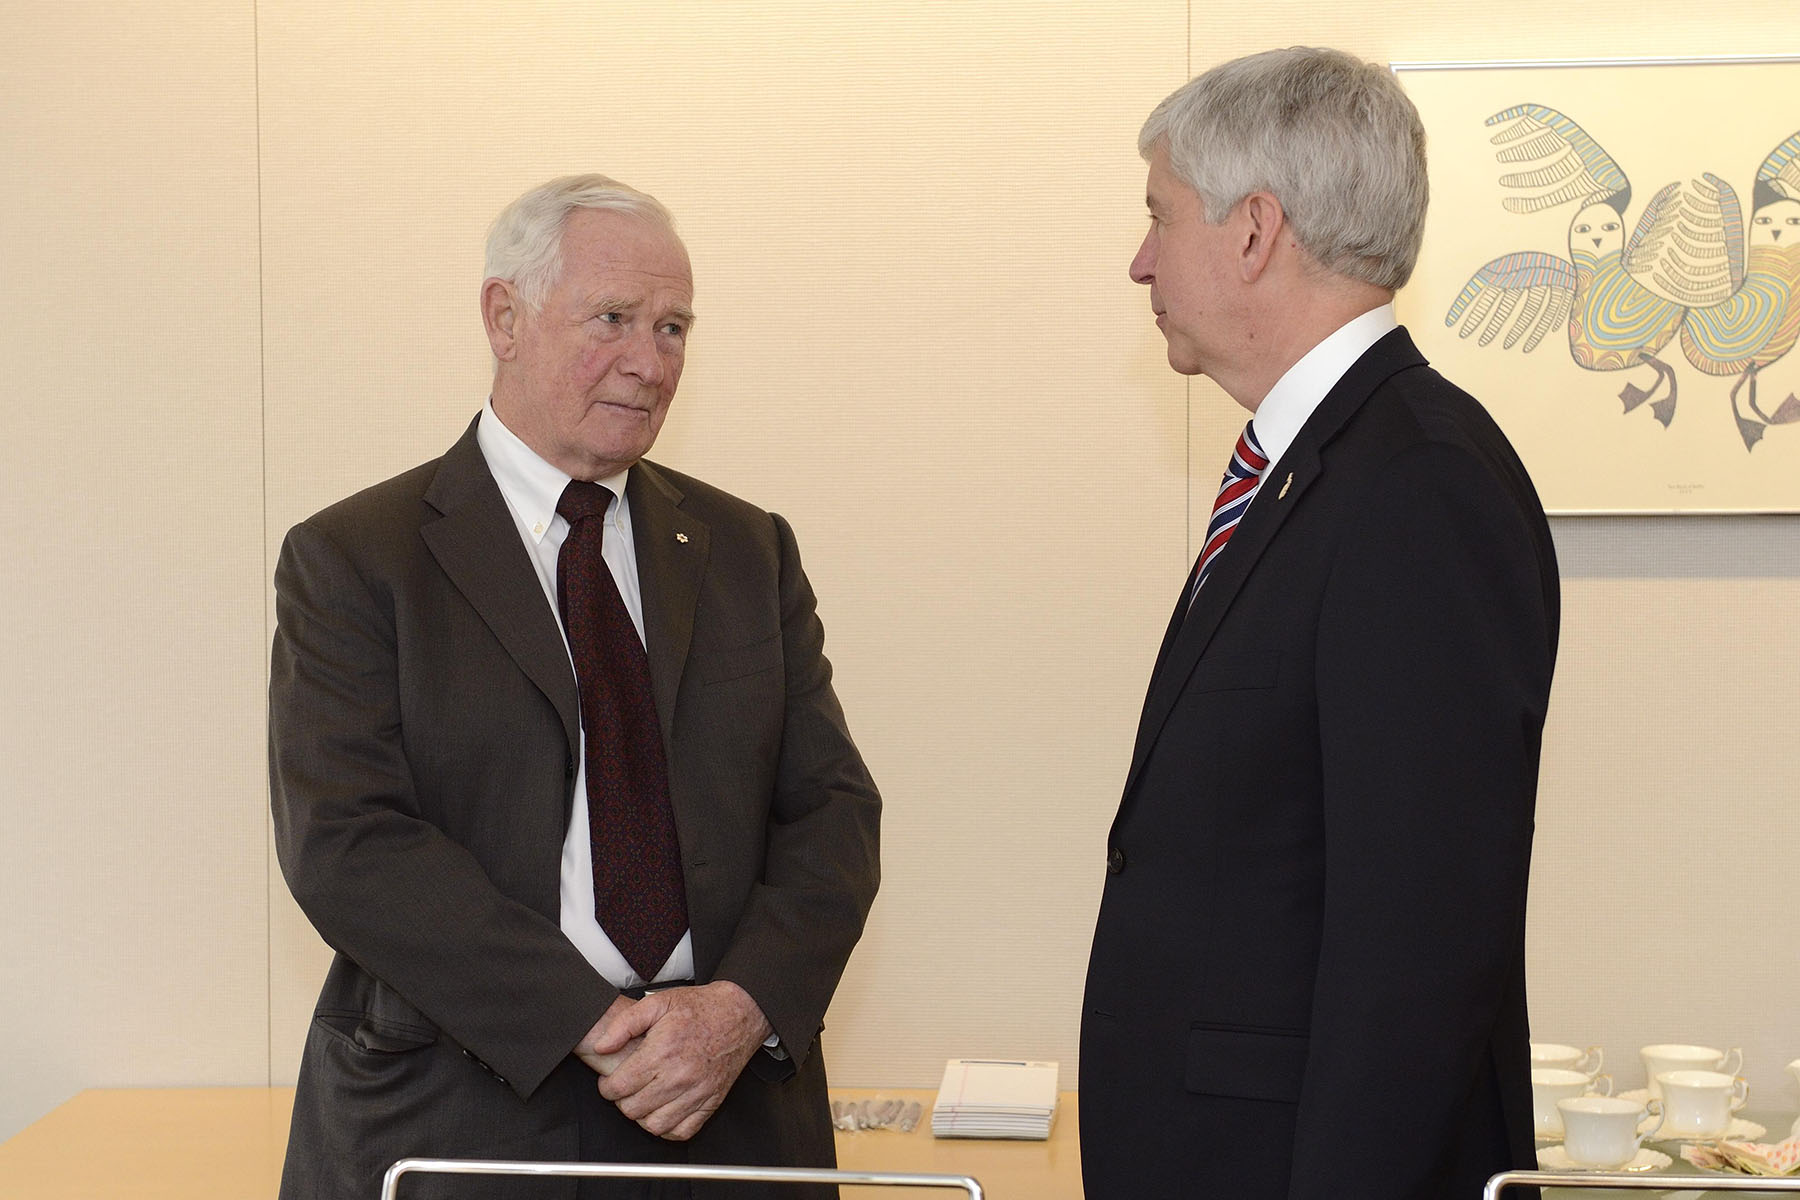 Before concluding his visit to the Midwest of the United States of America, His Excellency met with the Honourable Rick Snyder, Governor of Michigan.